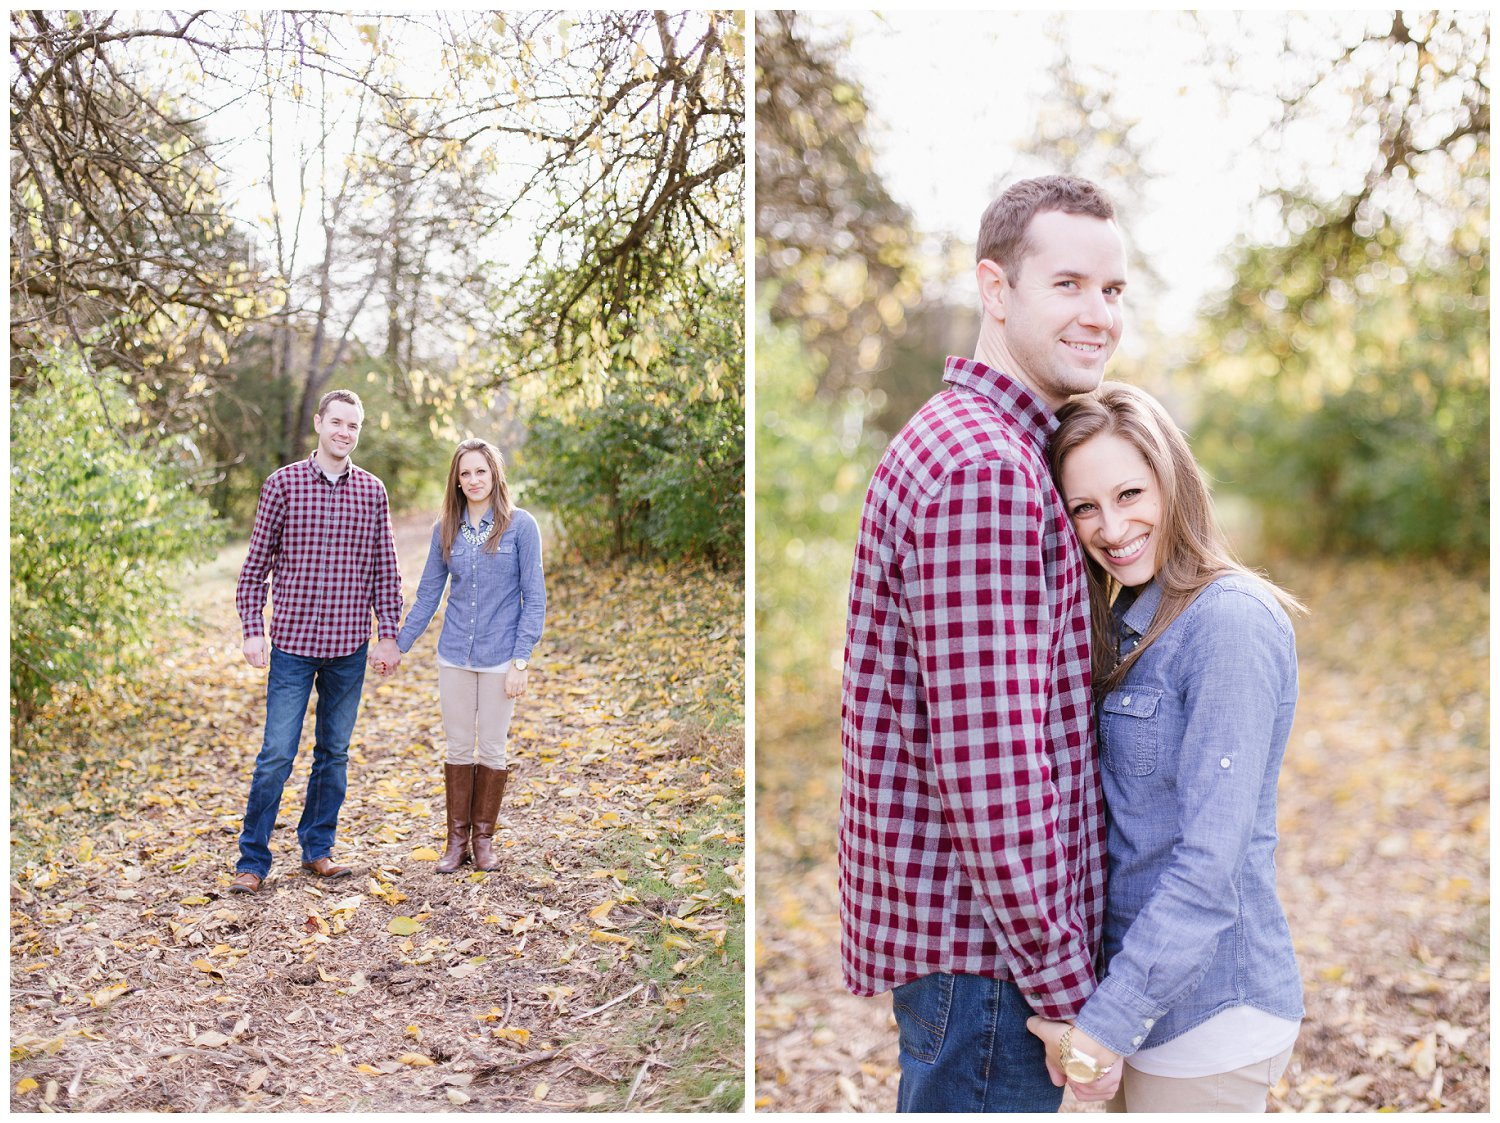 laina-matt-prospect-kentucky-engagement-session_0001.jpg